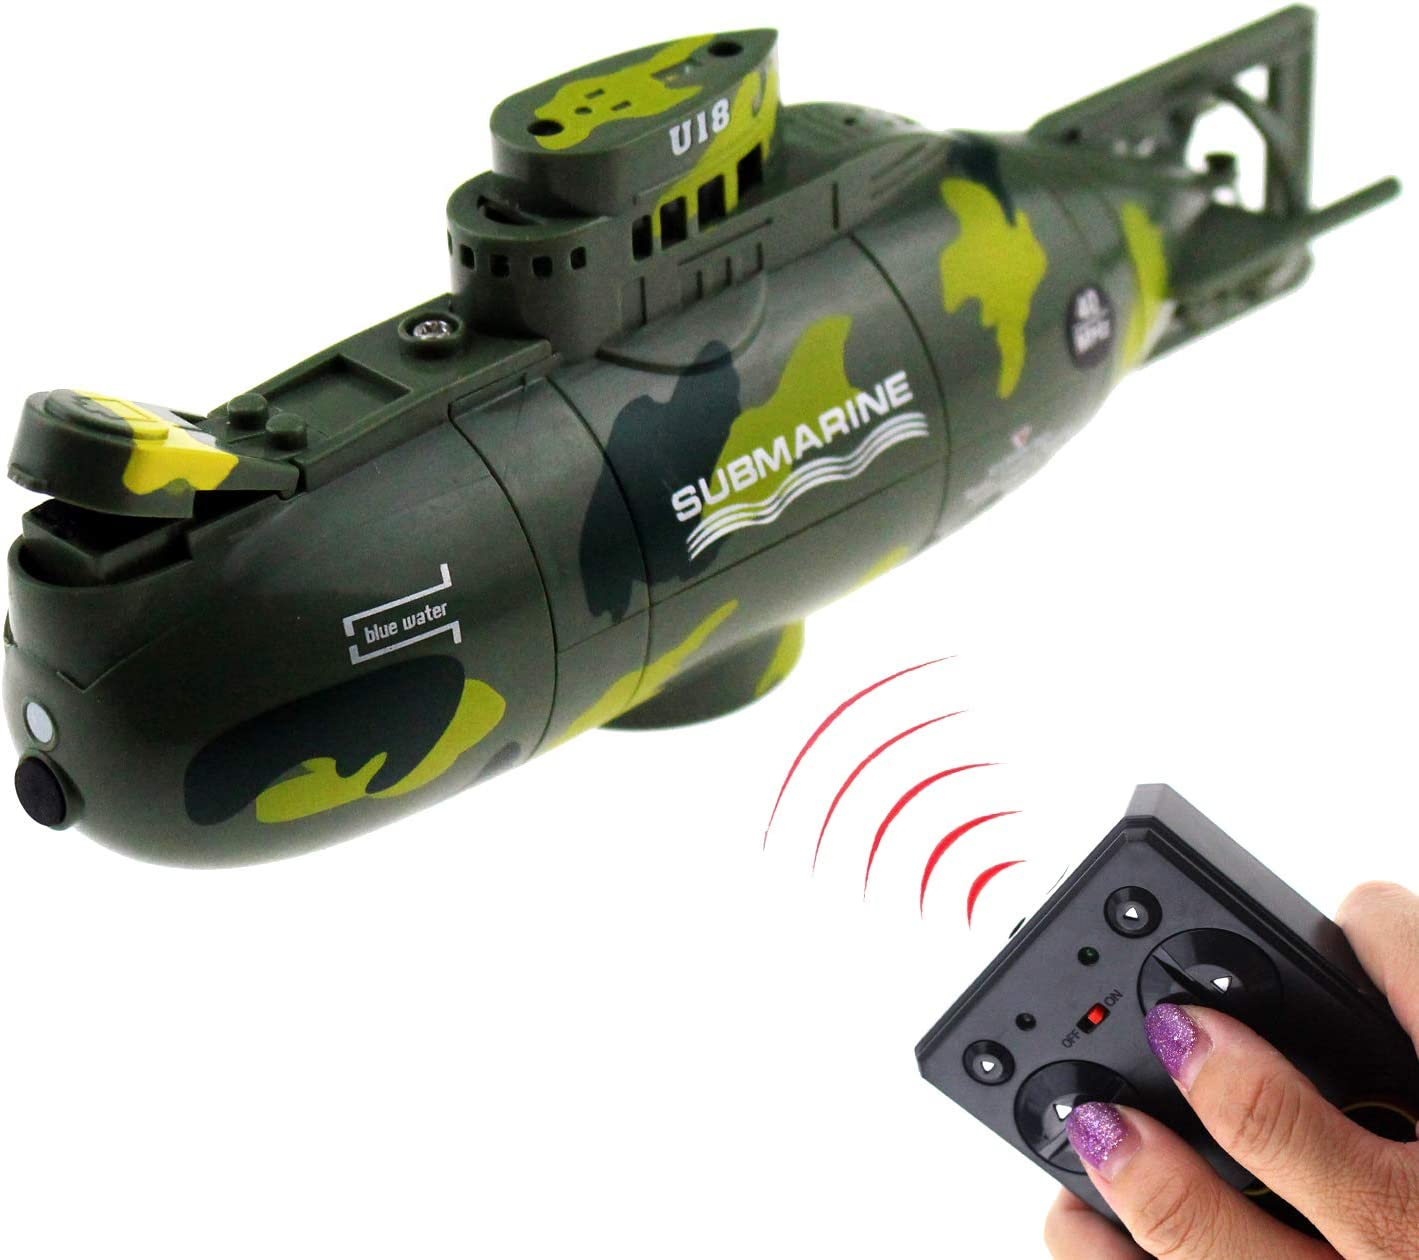 Tipmant Mini RC Submarine Remote Control Boat Ship Military Model Electronic Water Toy Waterproof Diving for Swimming Pool, Fish Tank Kids Gift (Green)